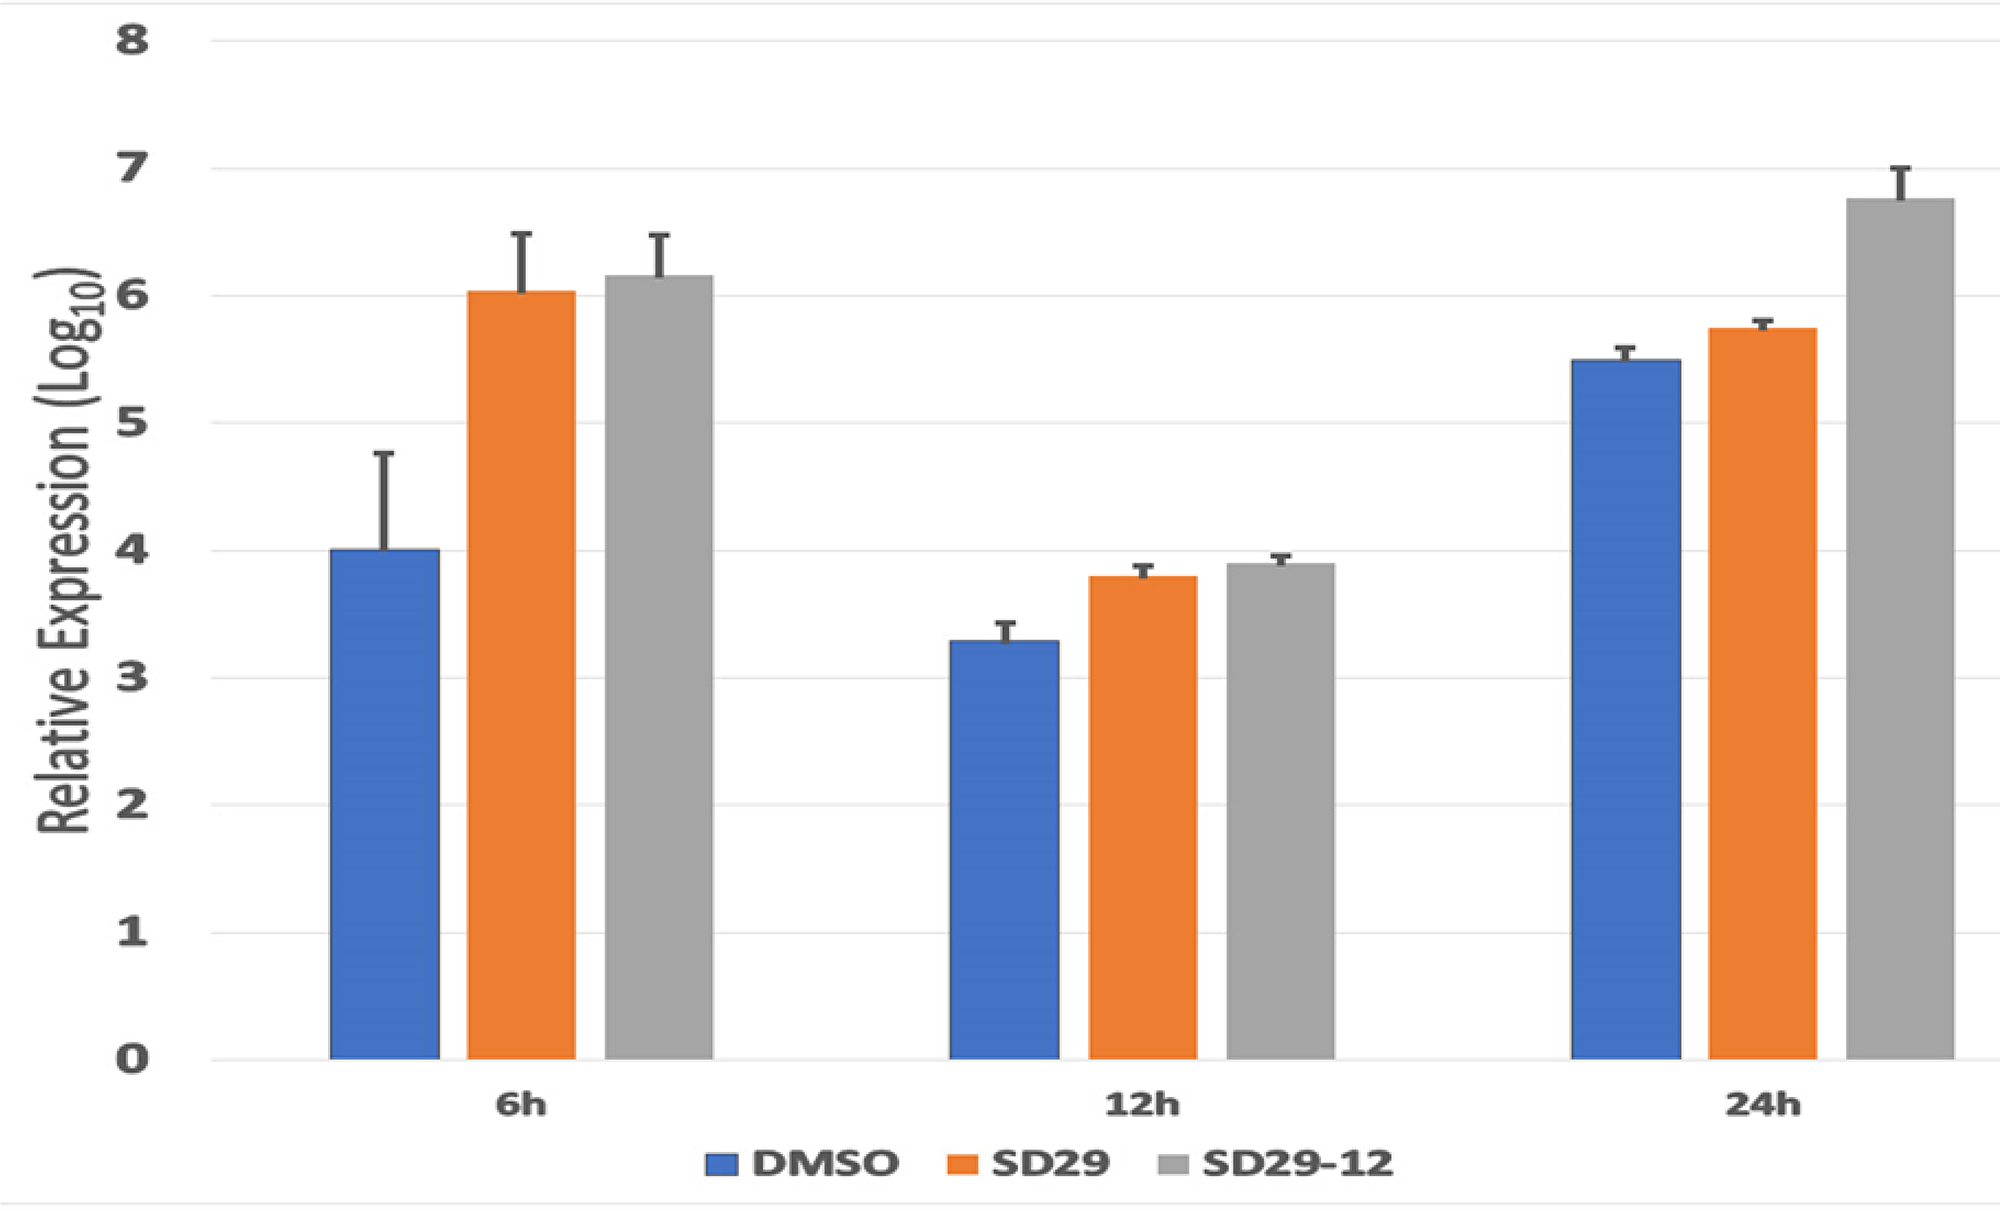 Real-time PCR analysis of HSV-1 ICP0 expression in the Hep-2 primary treated with the indicated inhibitor compounds and DMSO (as control) for the indicated time points.